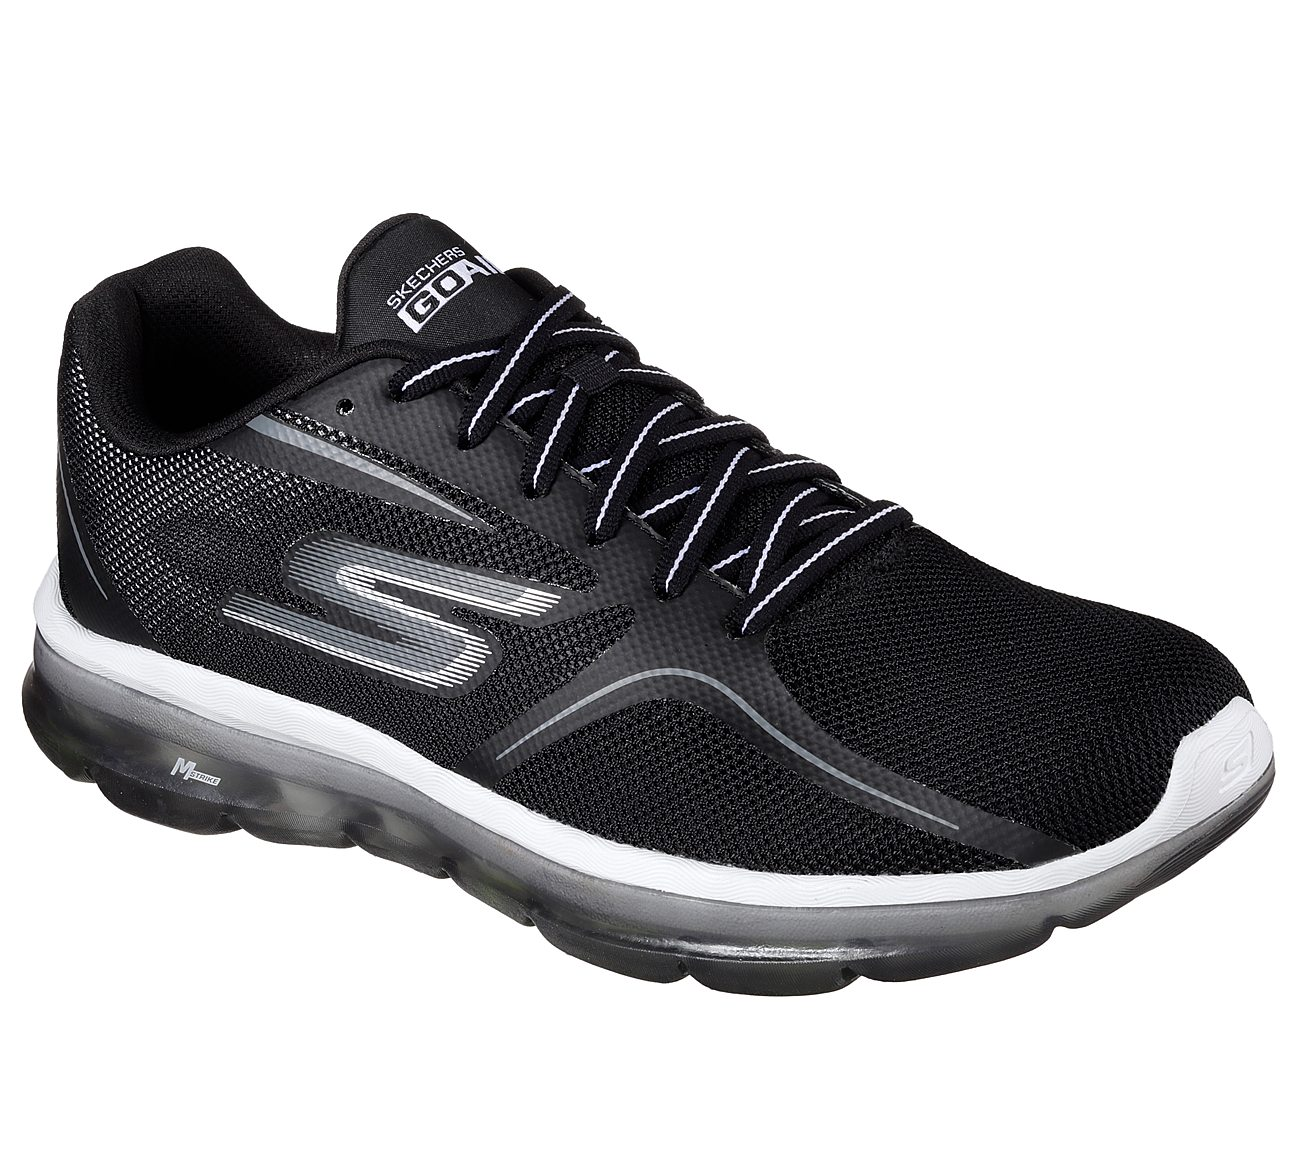 Buy SKECHERS Skechers GO Air 2 Skechers Performance Shoes kGIzf